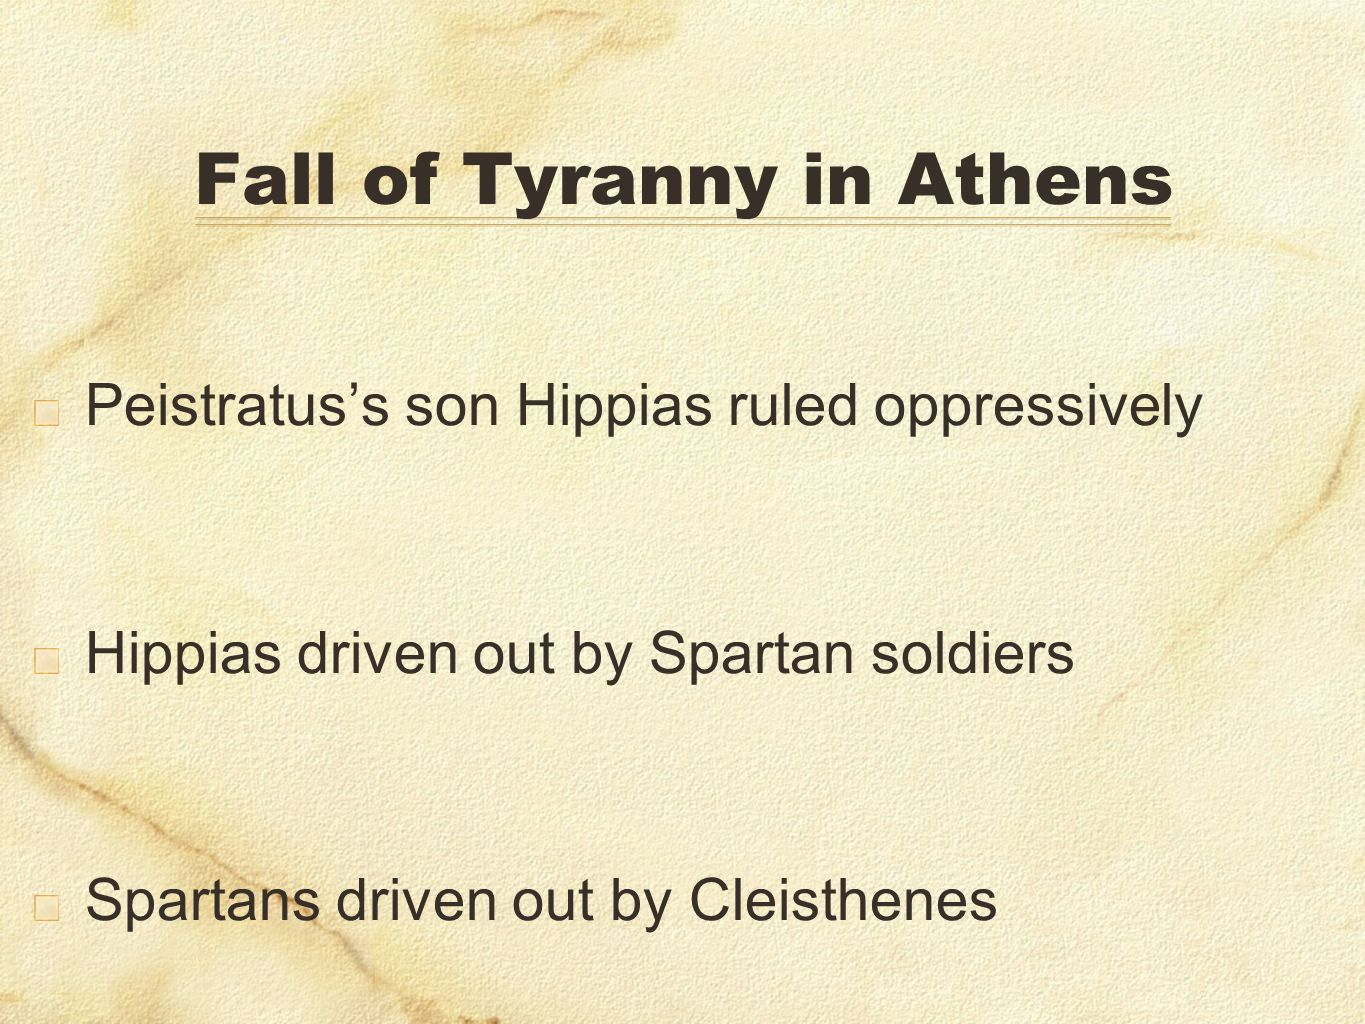 Fall of Tyranny in Athens